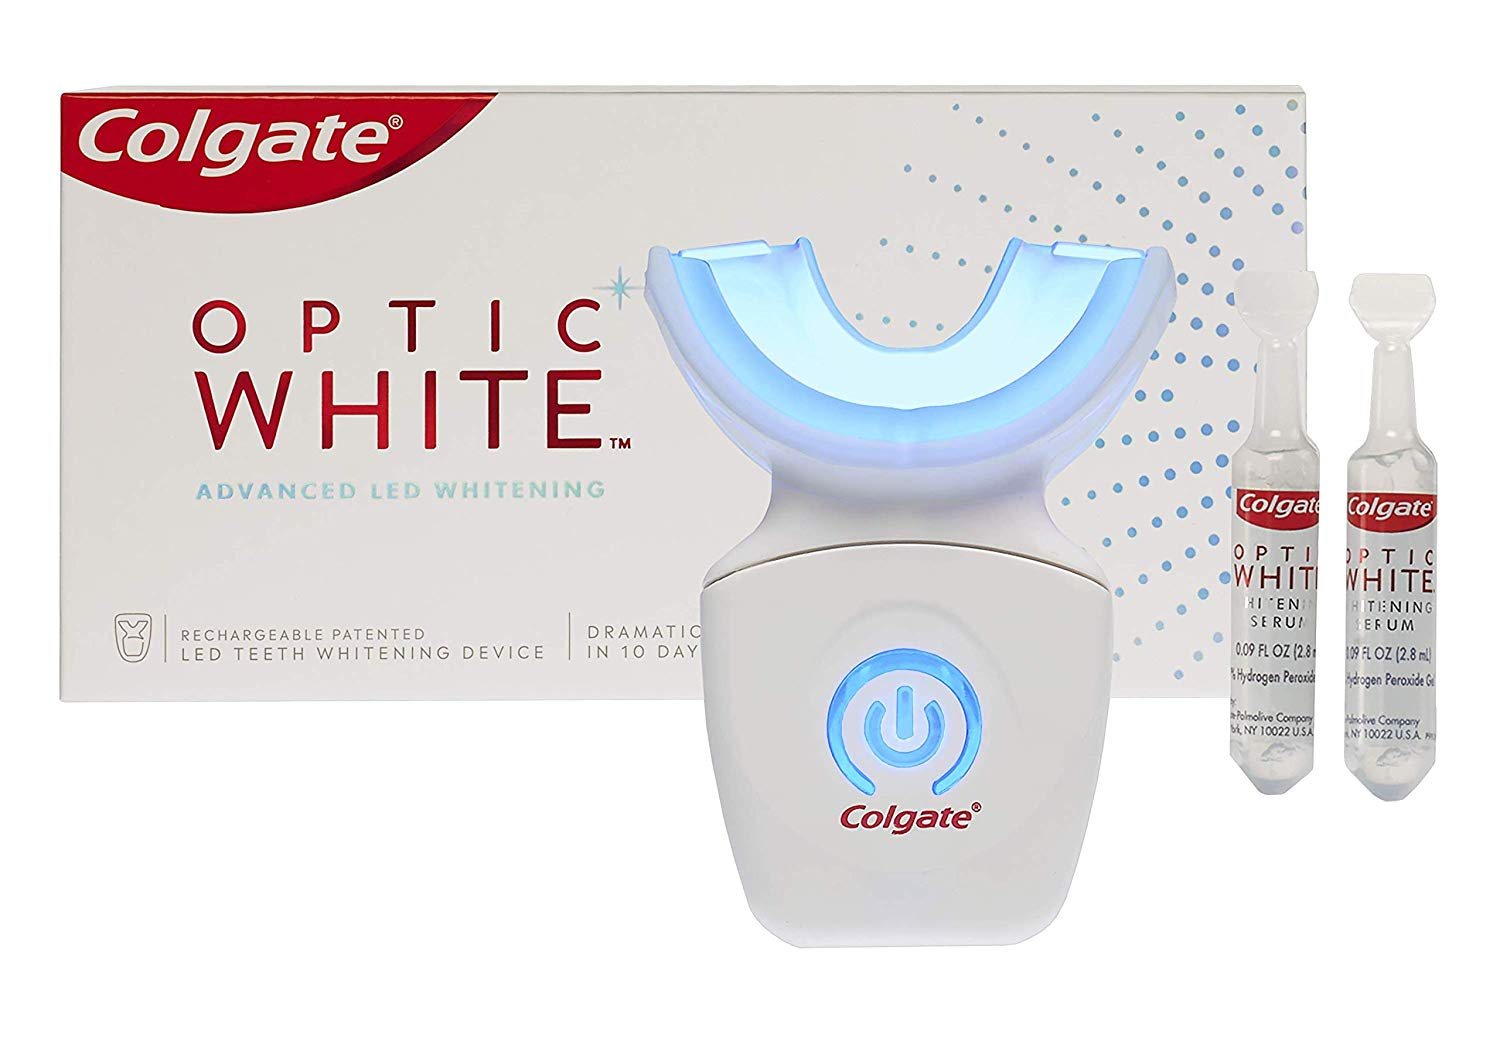 Colgate Optic White Advanced LED Whitening